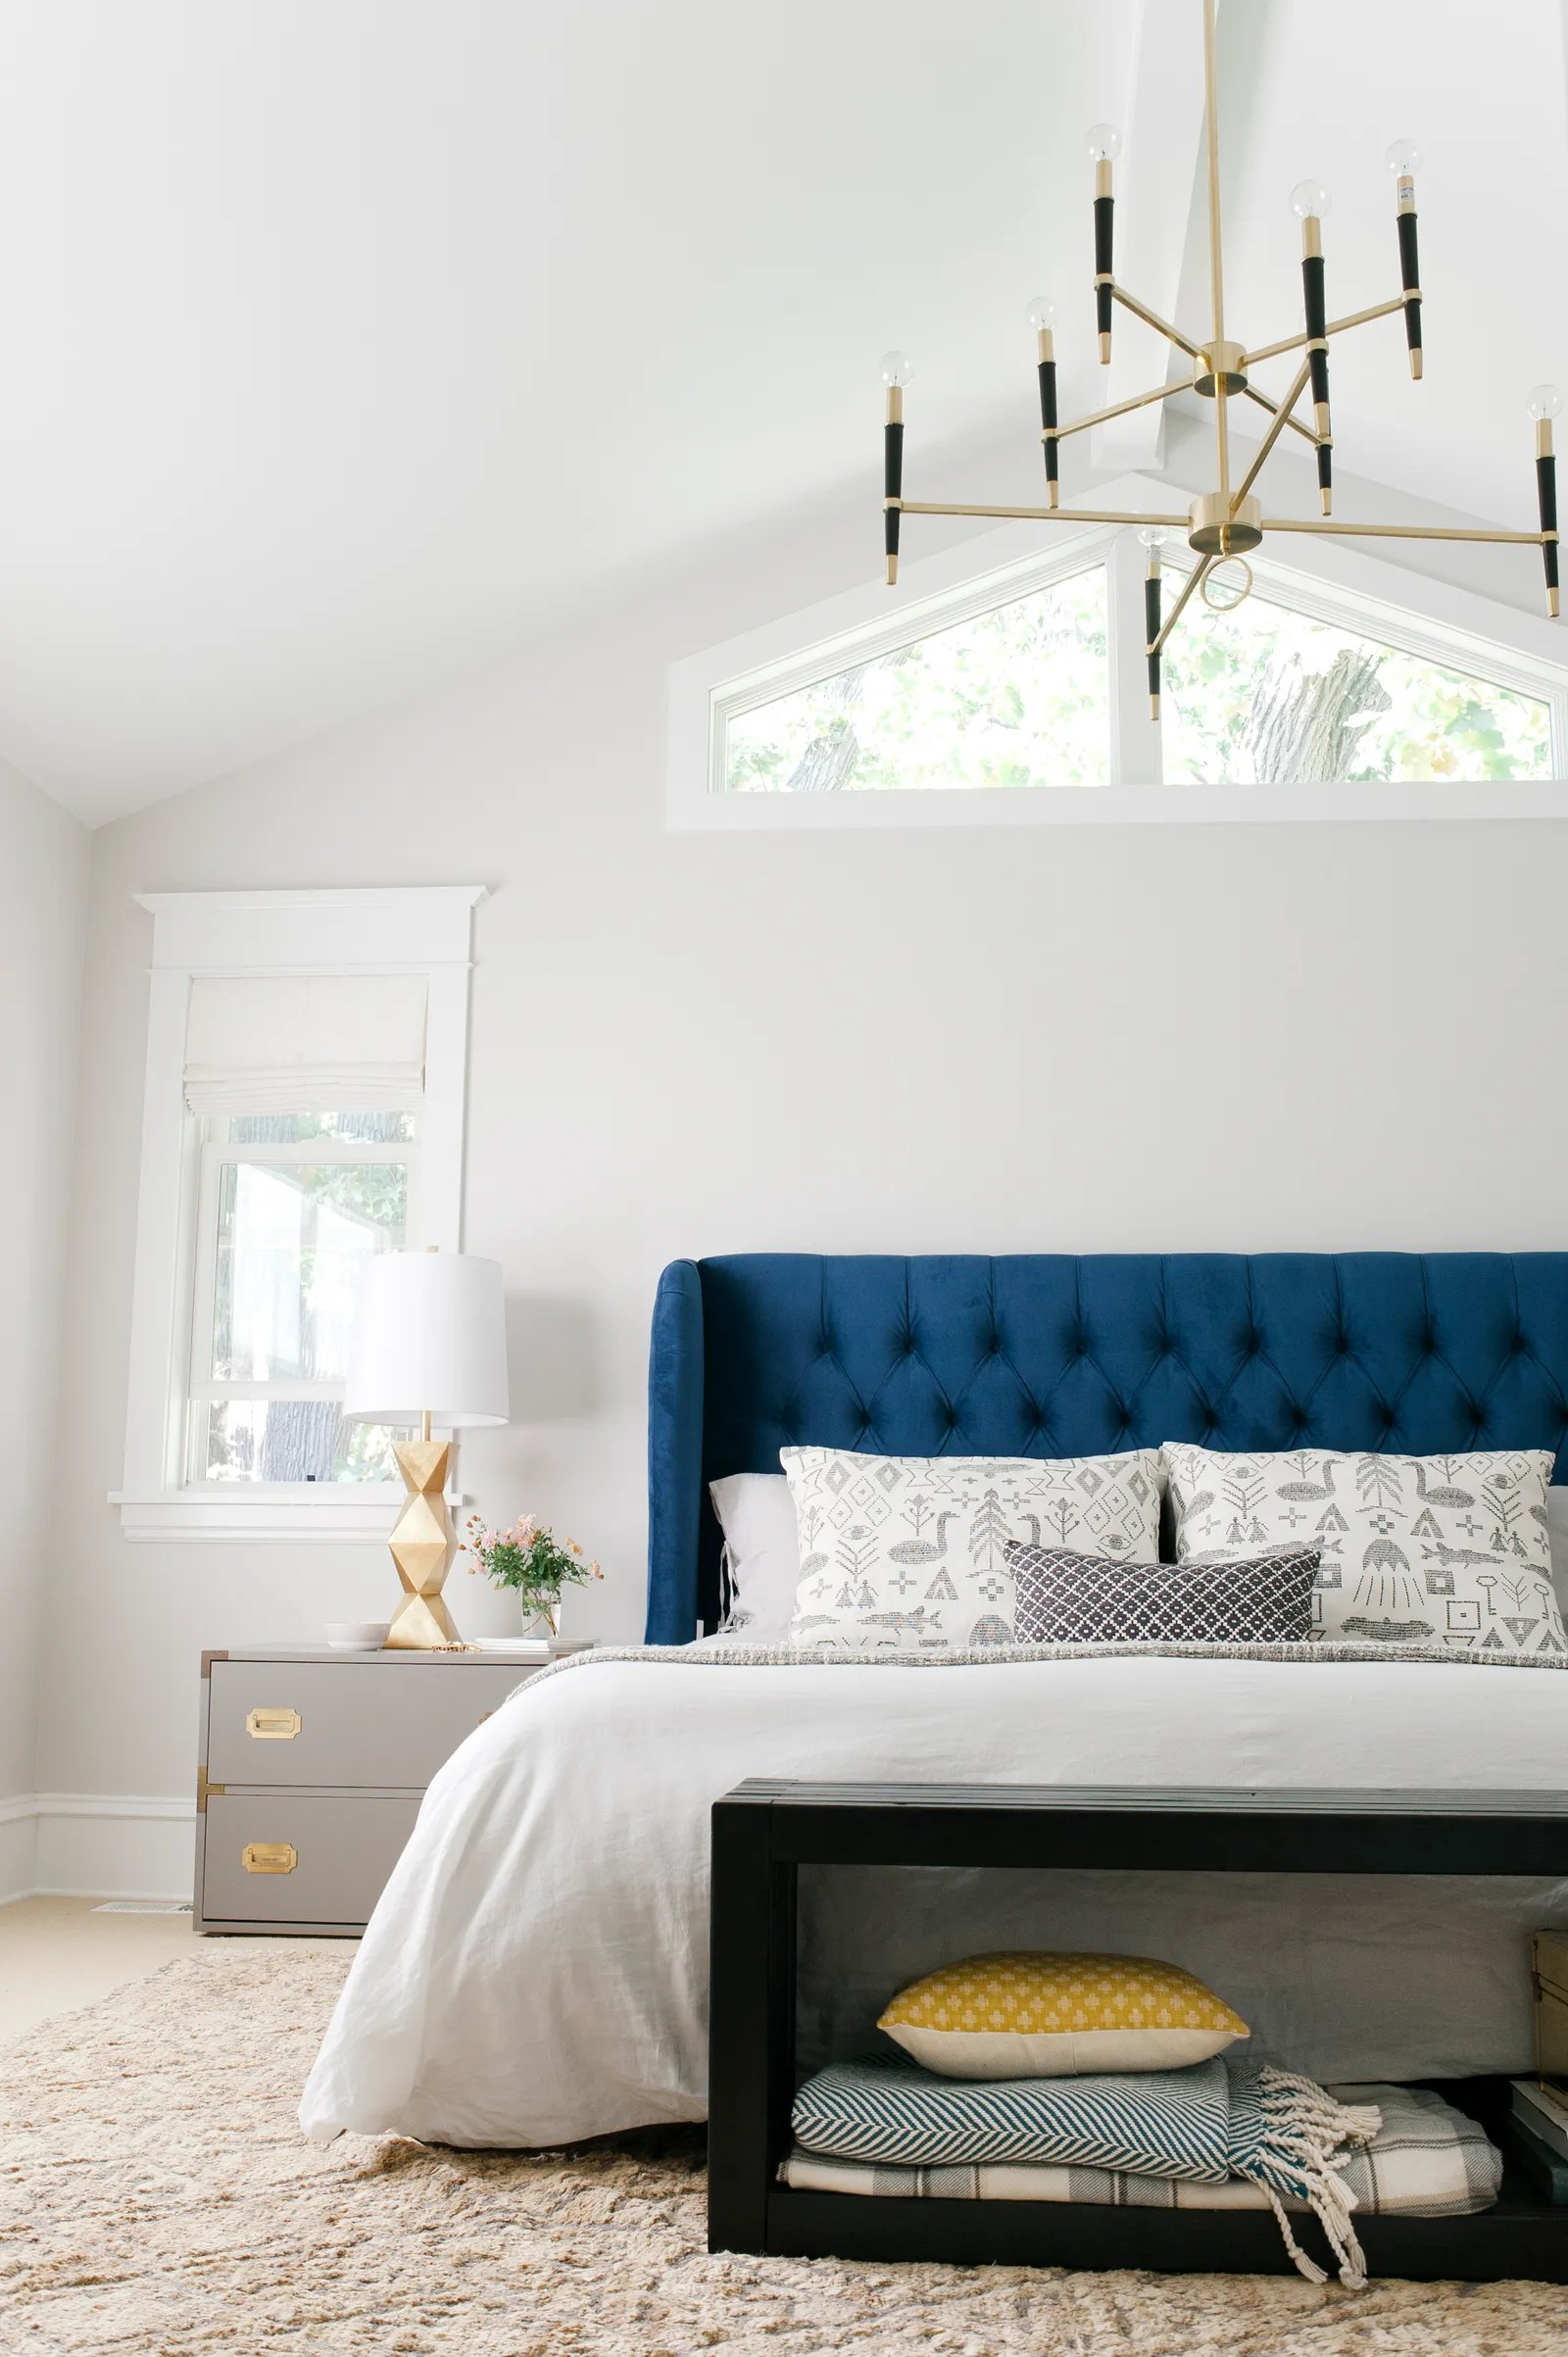 Bed End Storage How To Choose A Bedroom Bench Architectural Digest